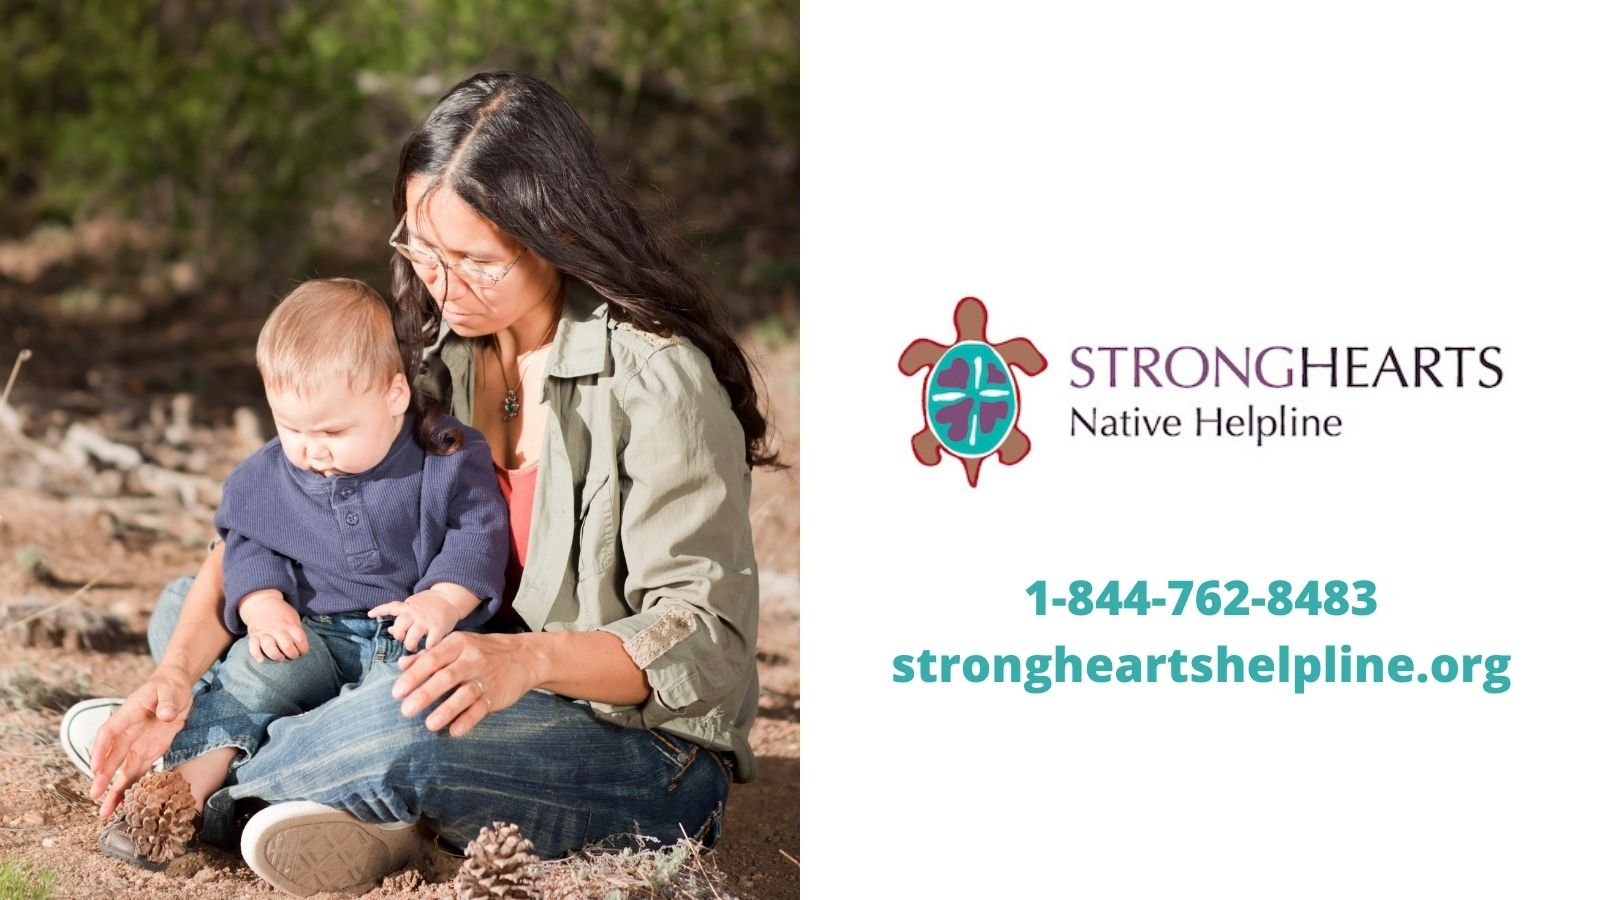 Native mother sitting cross-legged on ground with a child sitting in her lap on left side with logo of StrongHearts Native Helpline against white background on left, with teal text beneath '1-844-762-8483' and 'strongheartshelpline.org'.